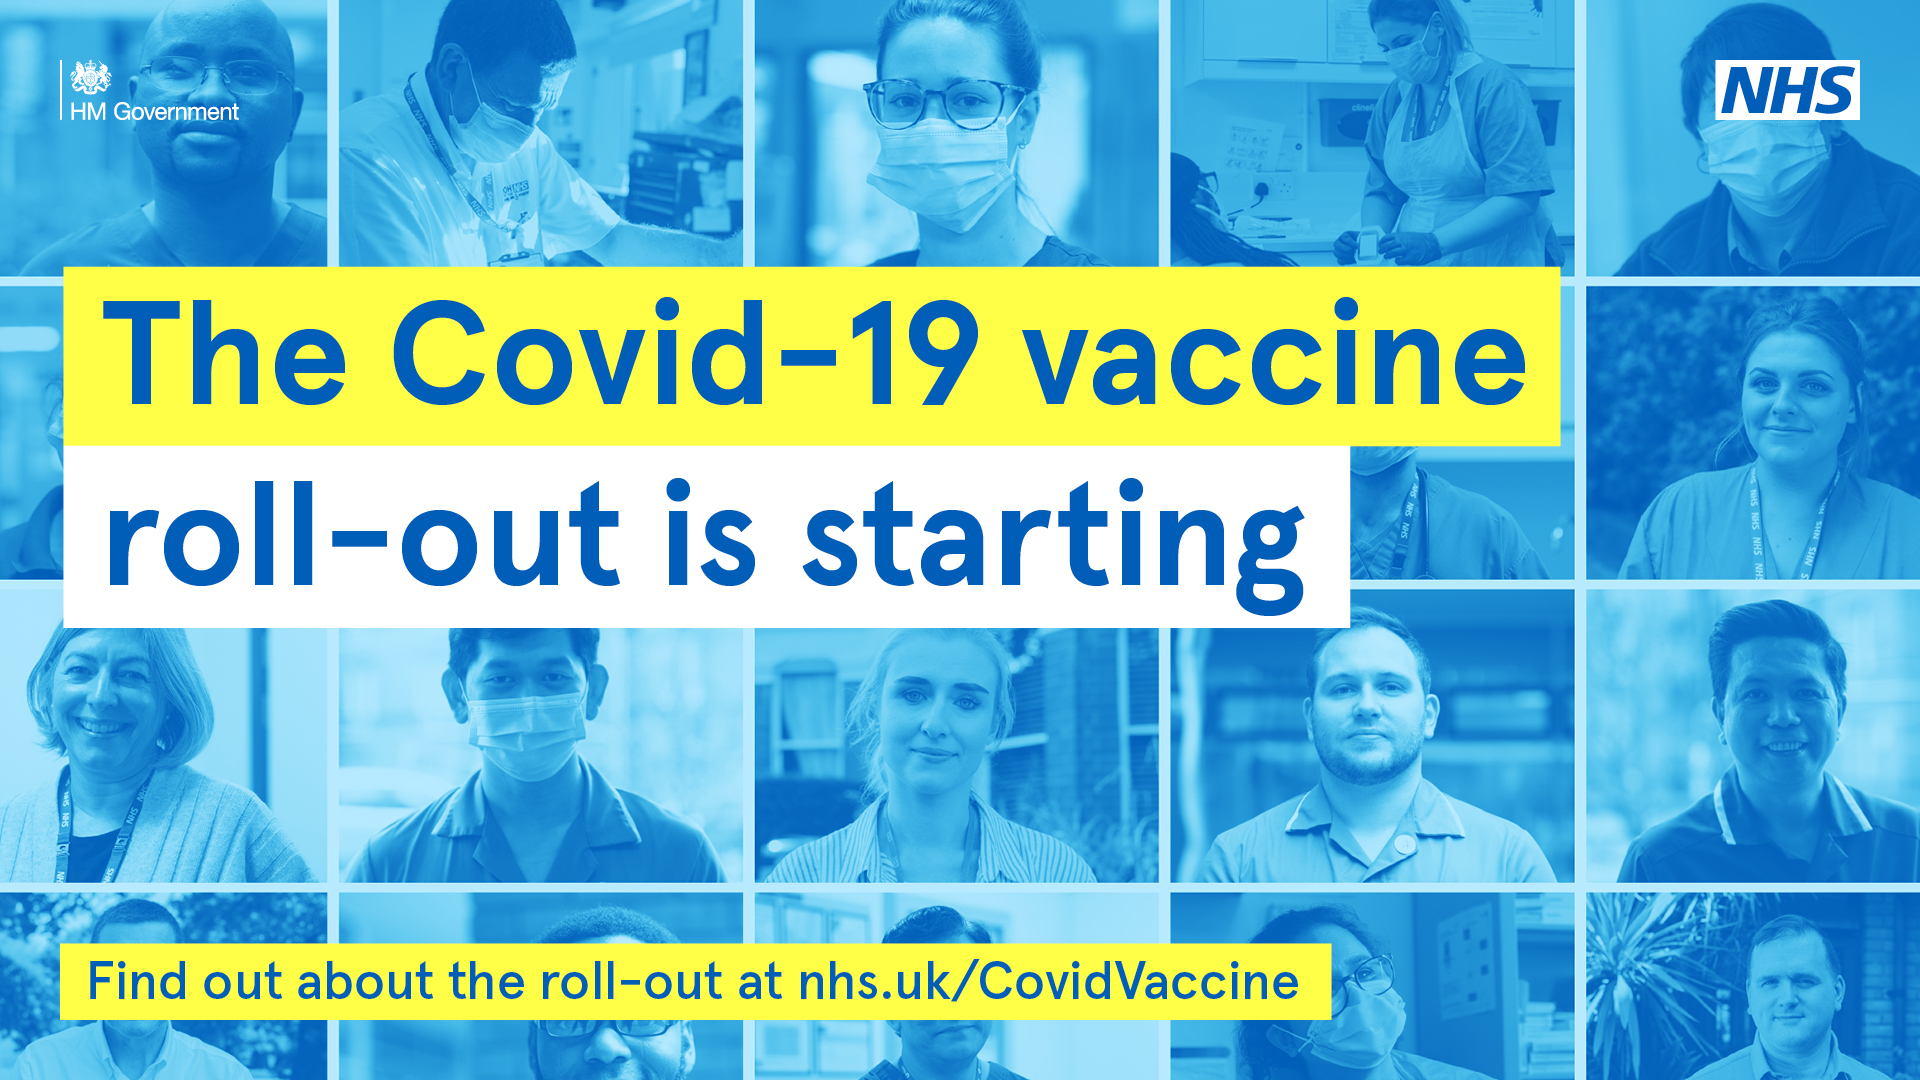 Covid-19 Vaccinations start